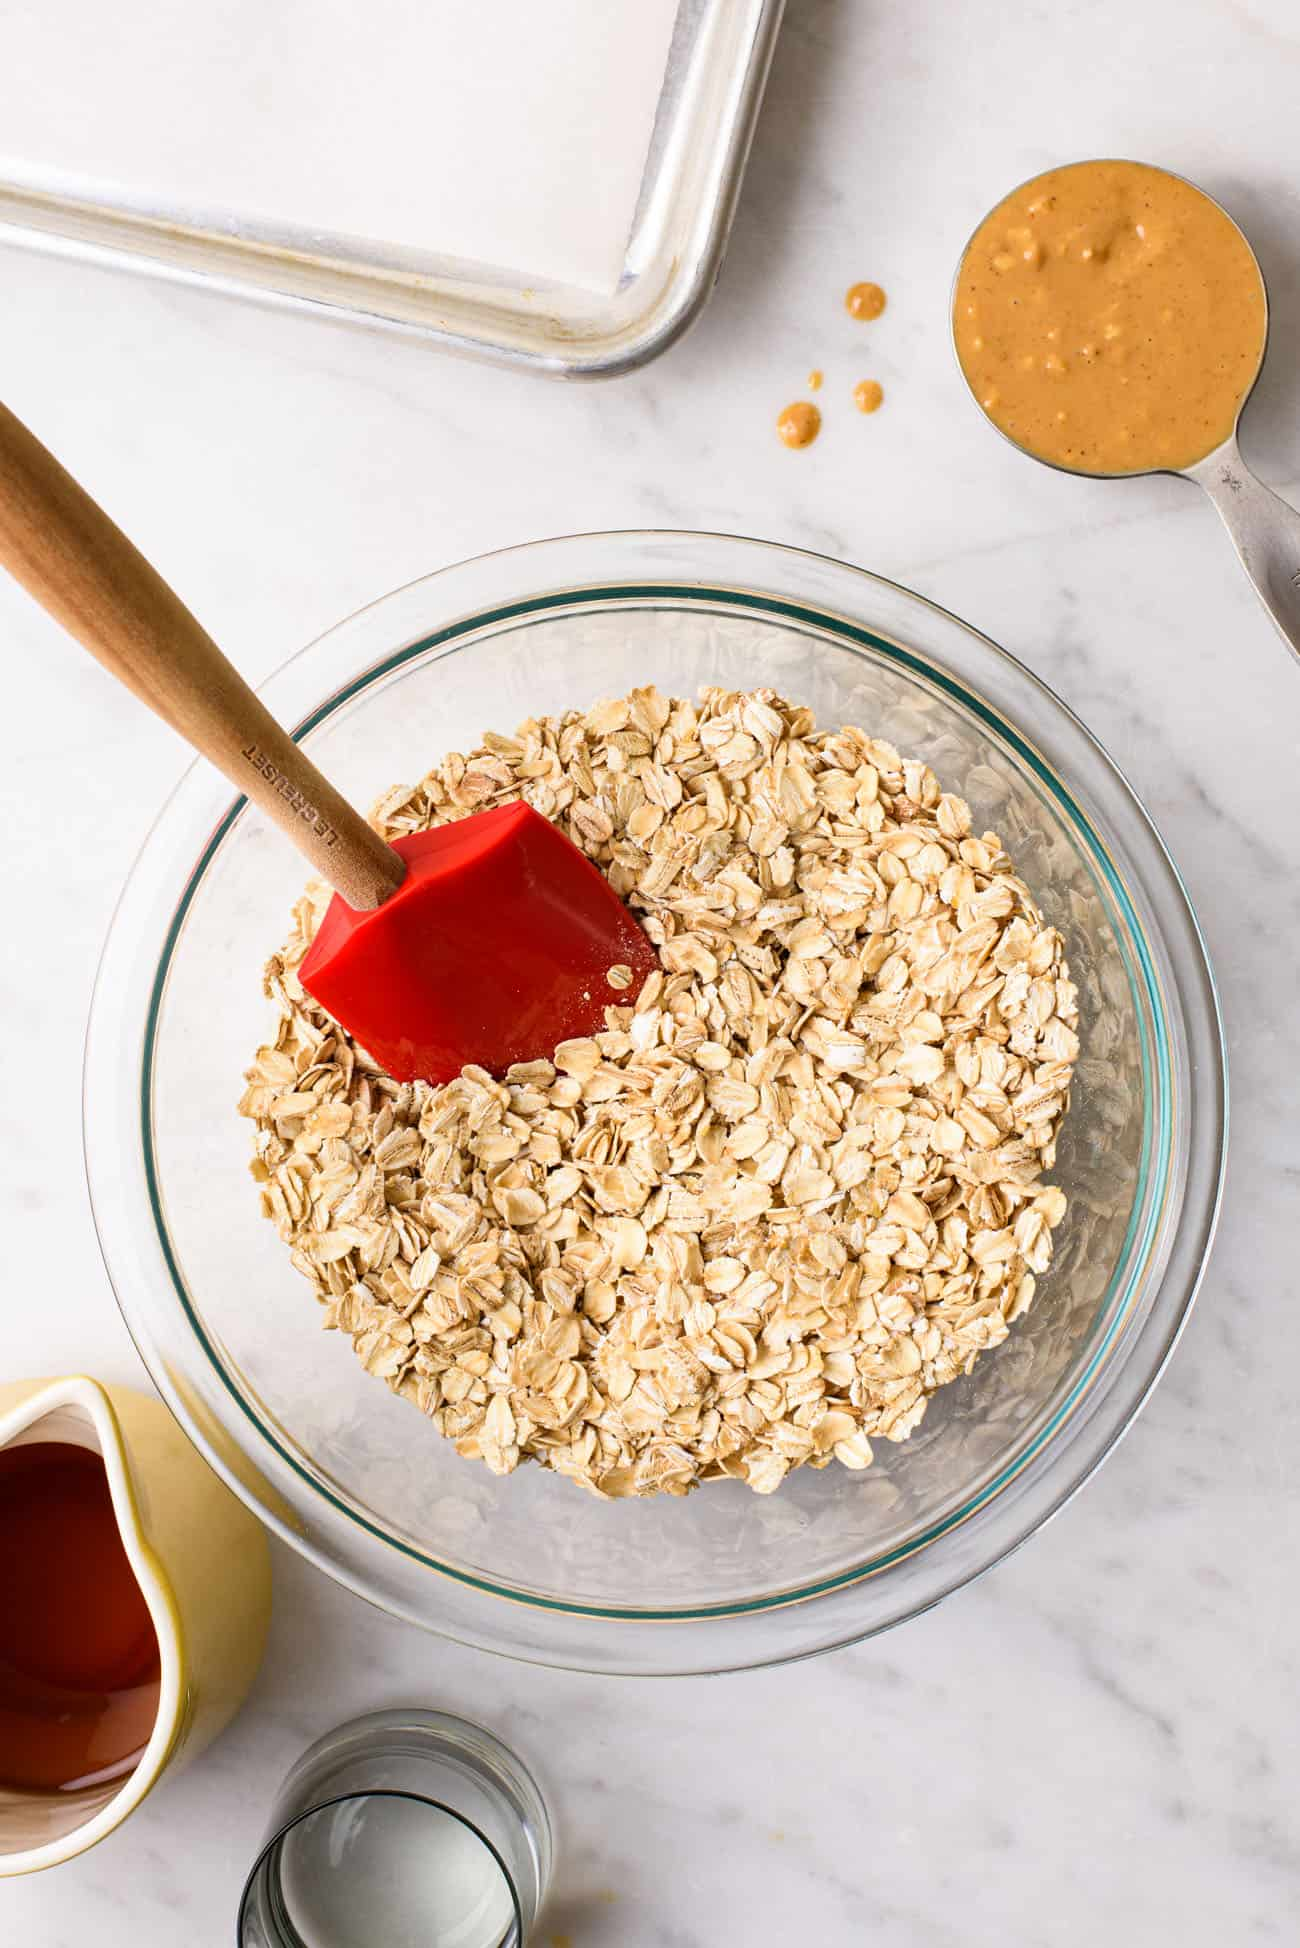 A Pyrex bowl with rolled oats next to a measuring cup with peanut butter